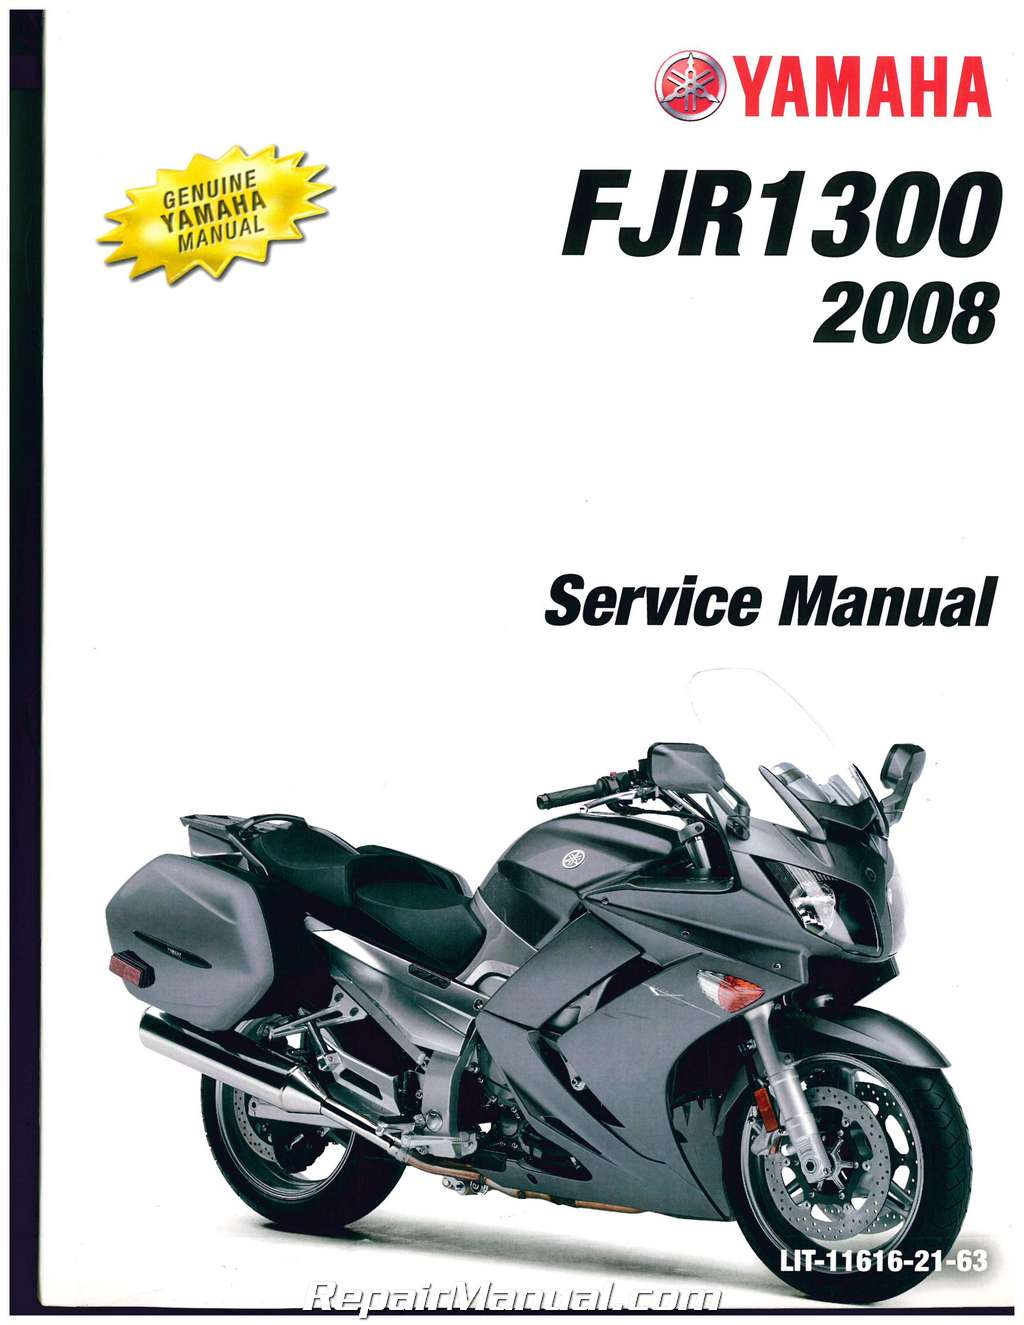 Yamaha Motorcycle Manuals Page 11 Of 118 Repair Online Honda Service Manualsonline